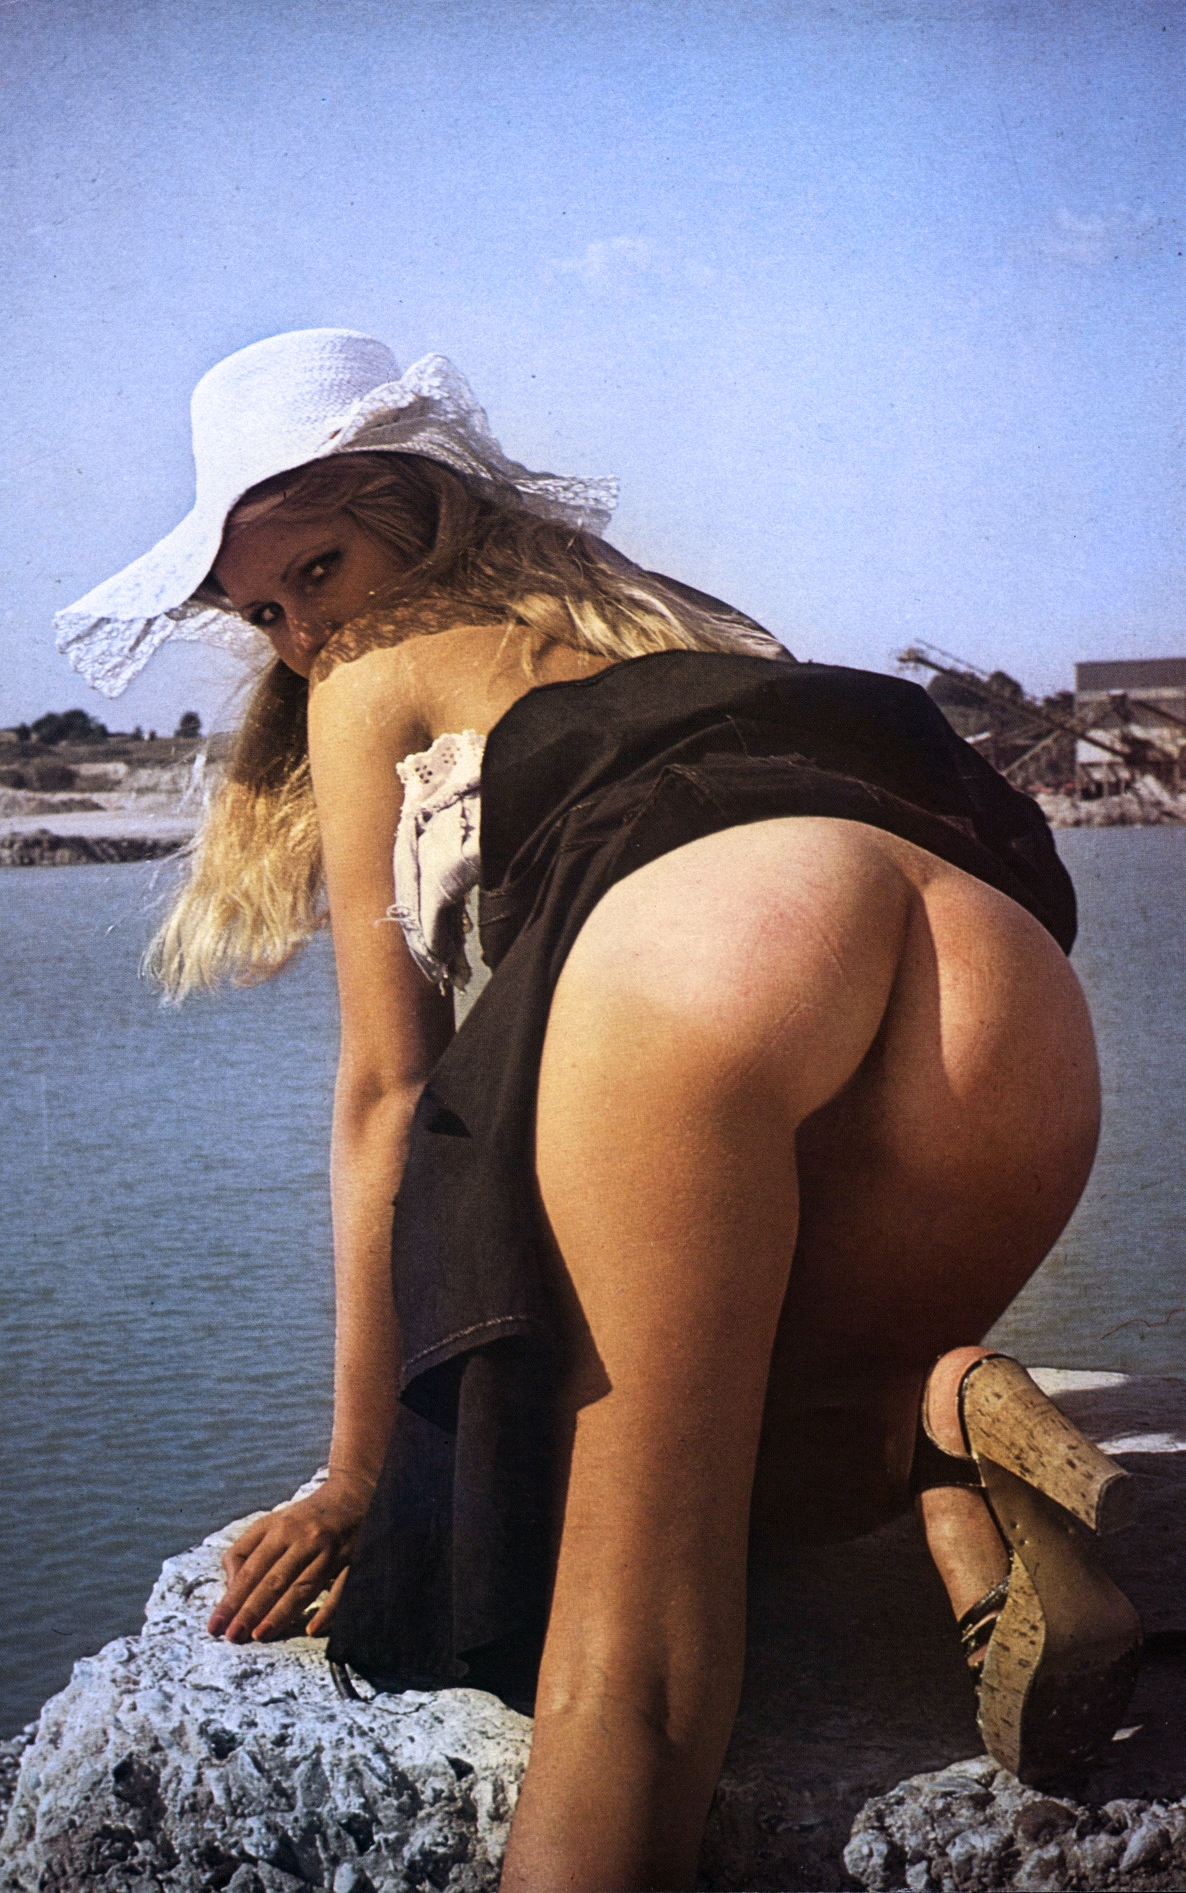 public-nudity-mooning-wooden-shoes-sunhat